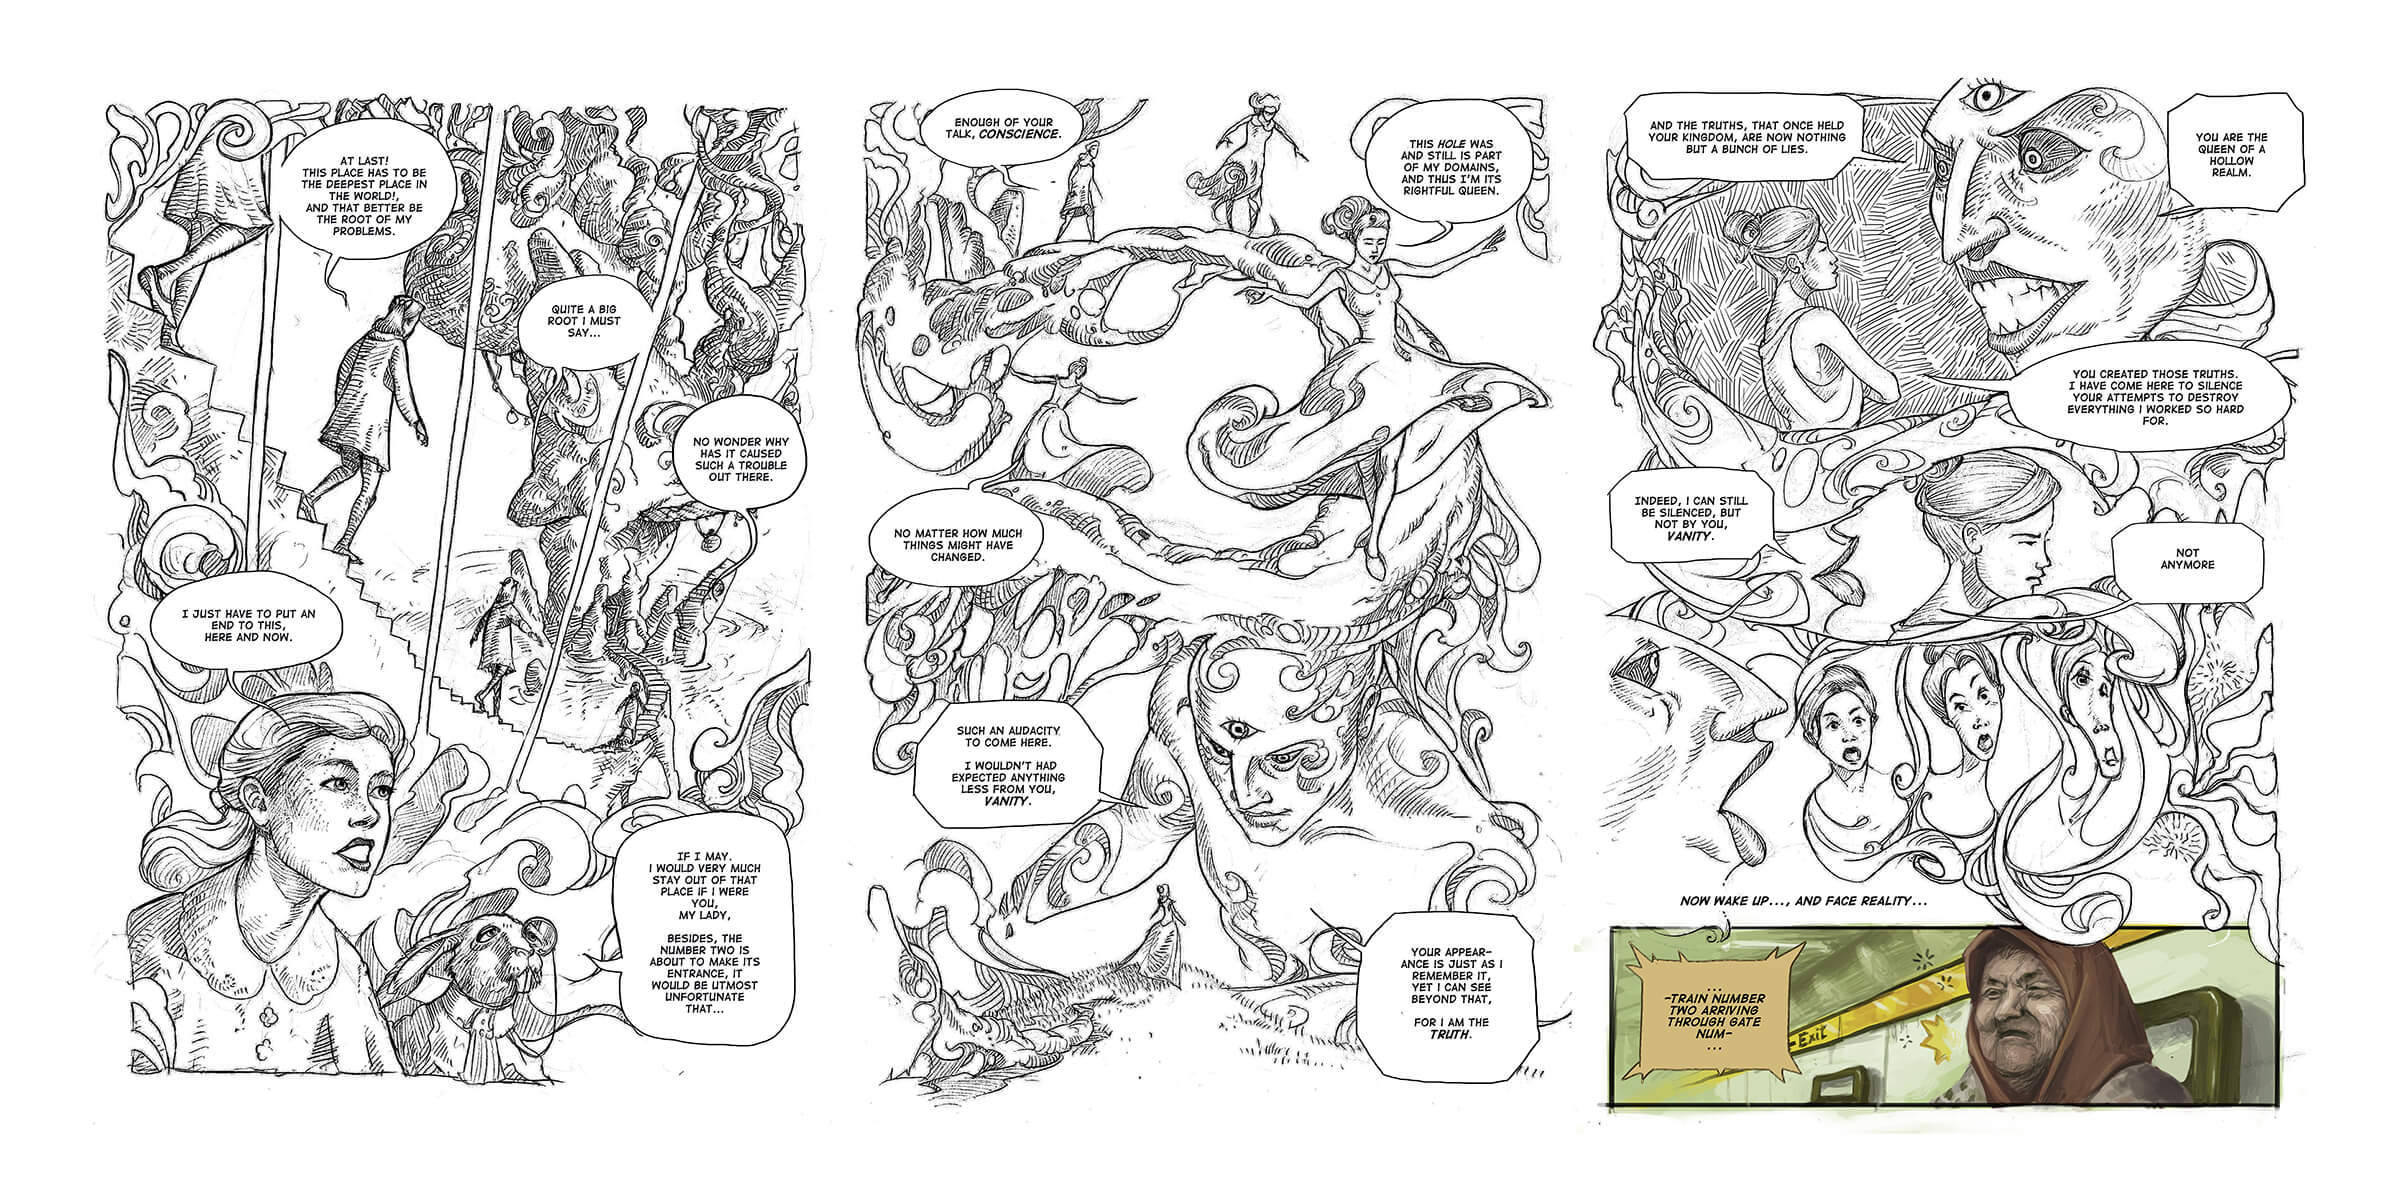 Three panels of a comic, mostly in black-and-white, of a woman exploring a dream realm only to awake to her reality.